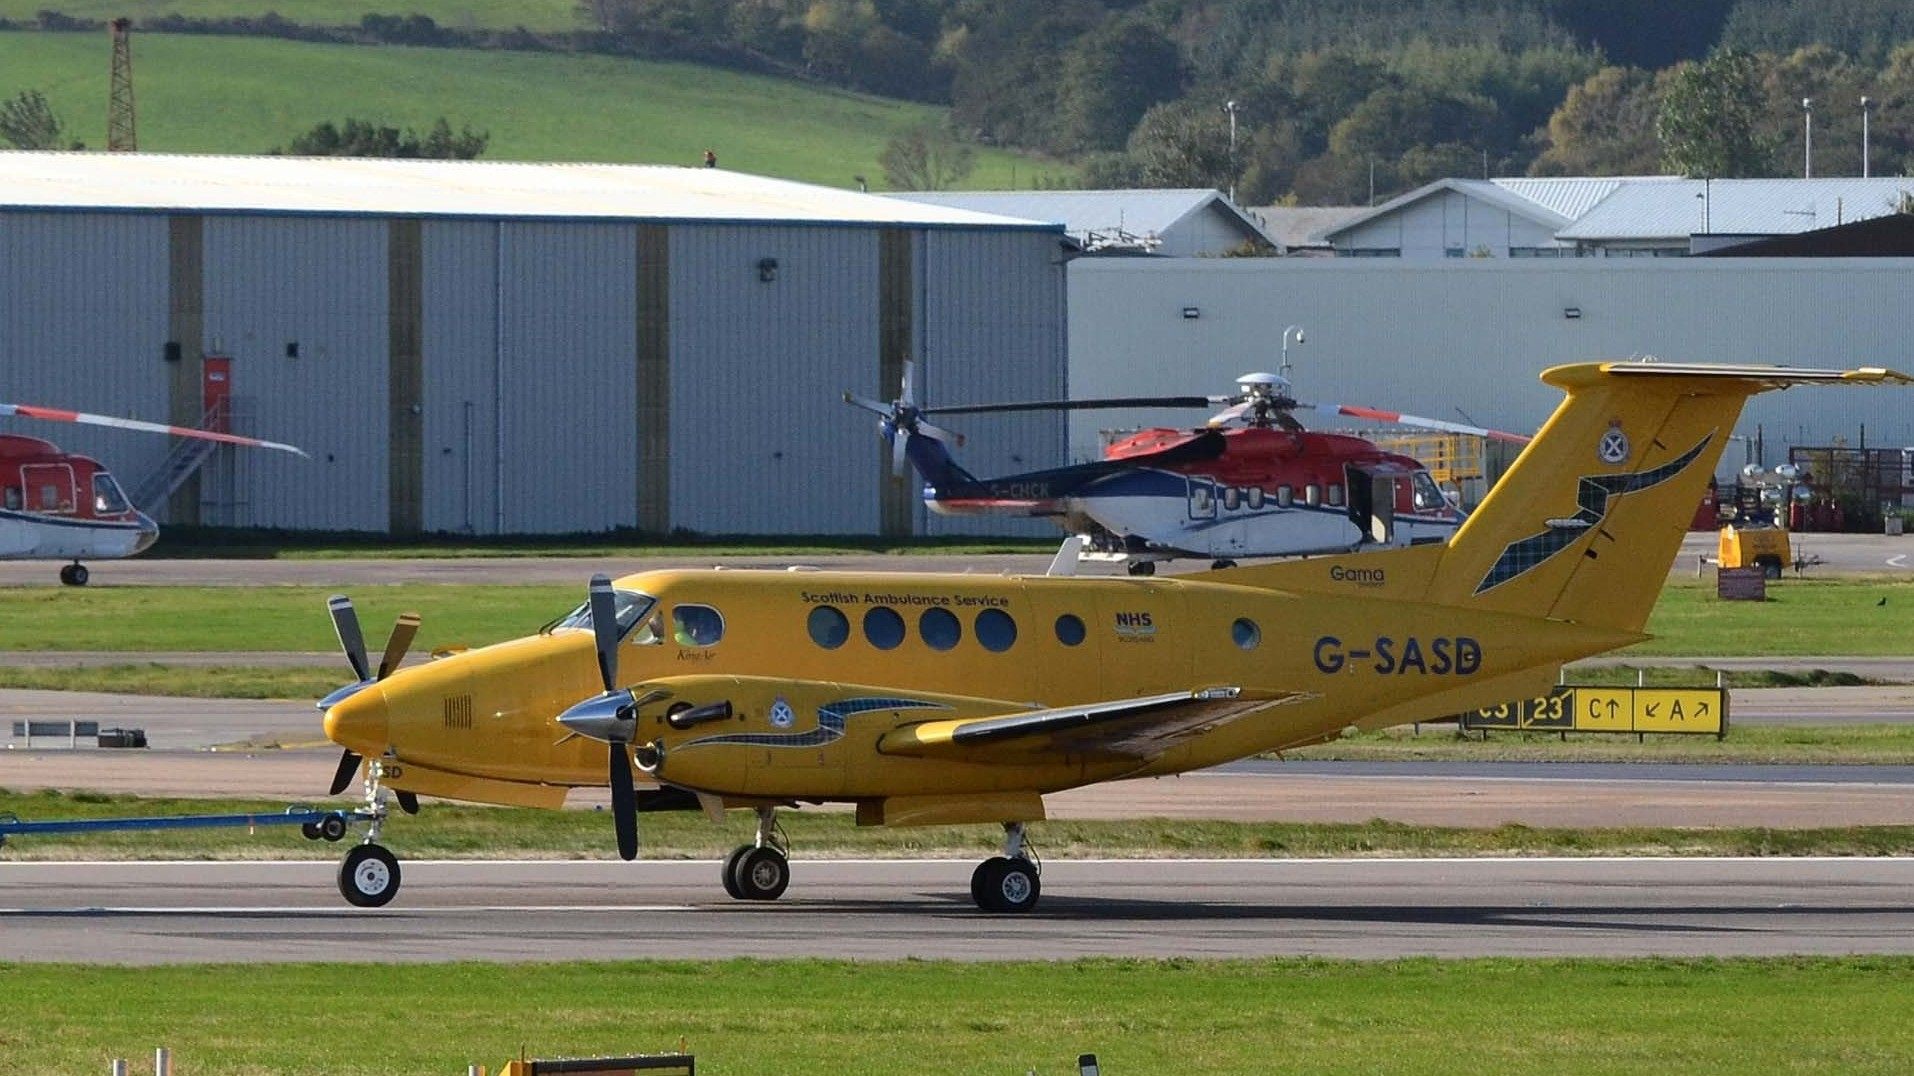 The Scottish Ambulance Service stressed that the air ambulance quickly diverted to Orkney after the error was revealed.